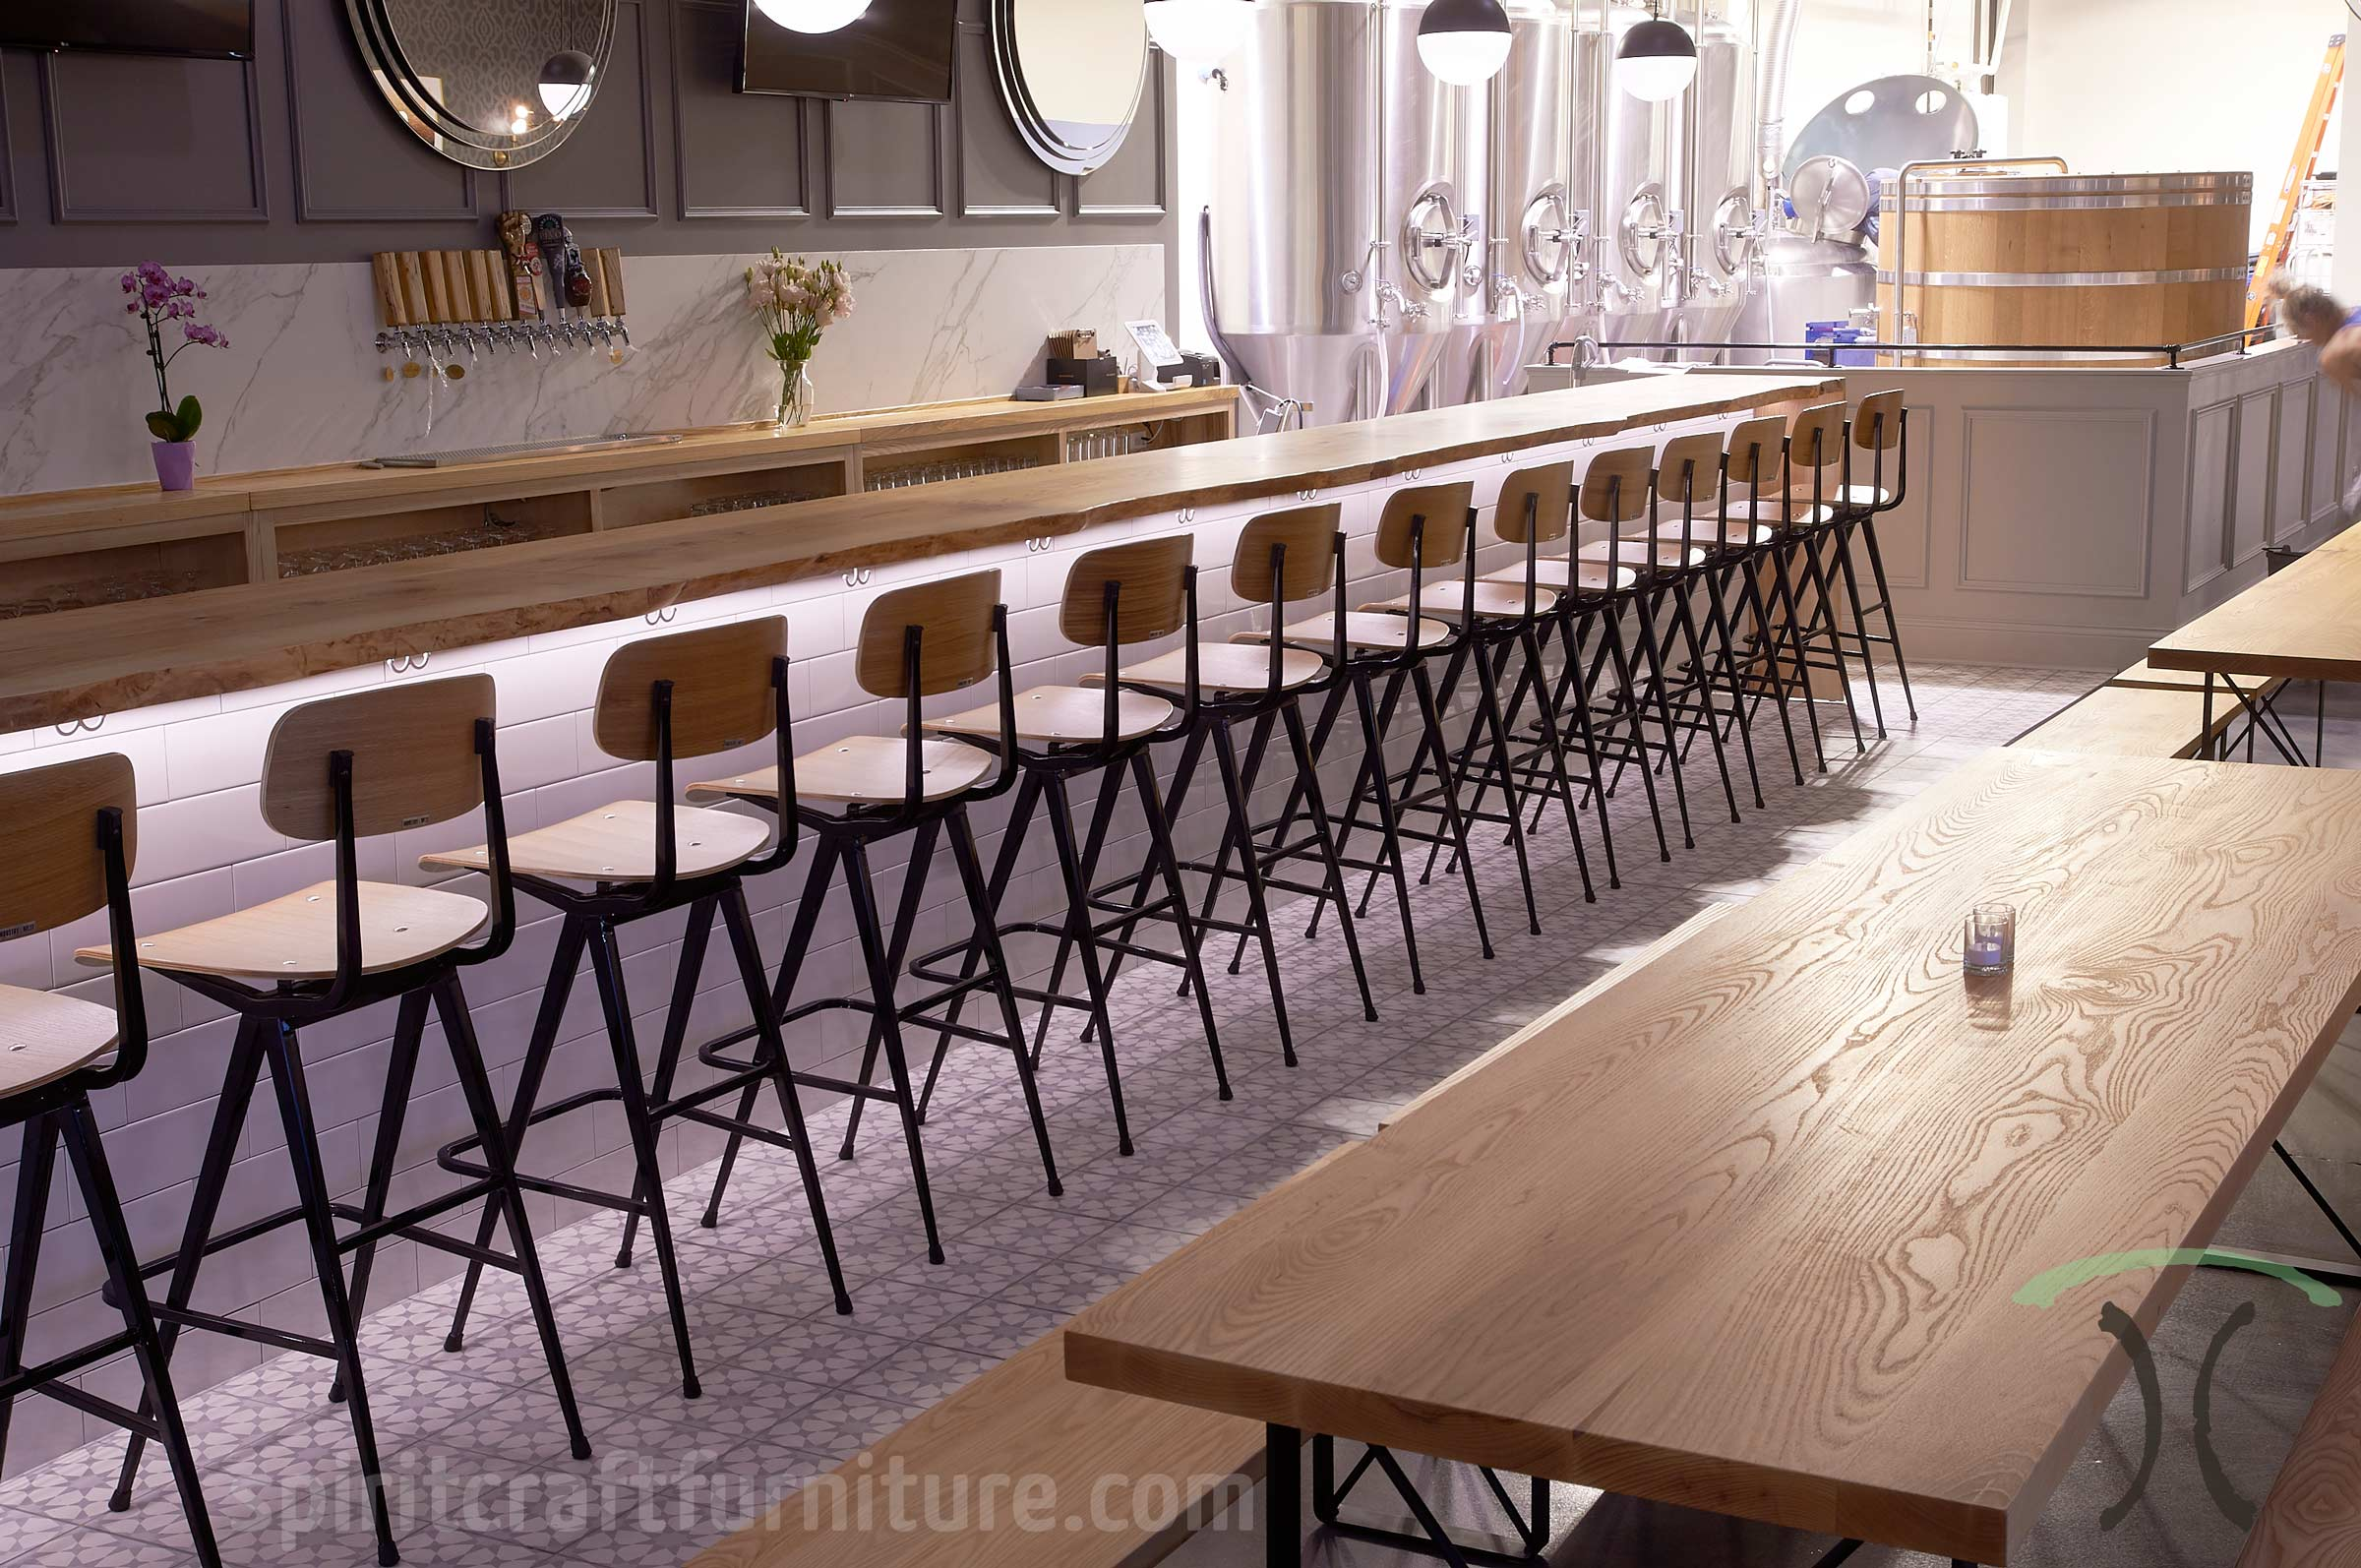 Custom Made Solid Wood Table Tops For Brew Pub Restaurant, In Kiln Dried  Ash Hardwoods